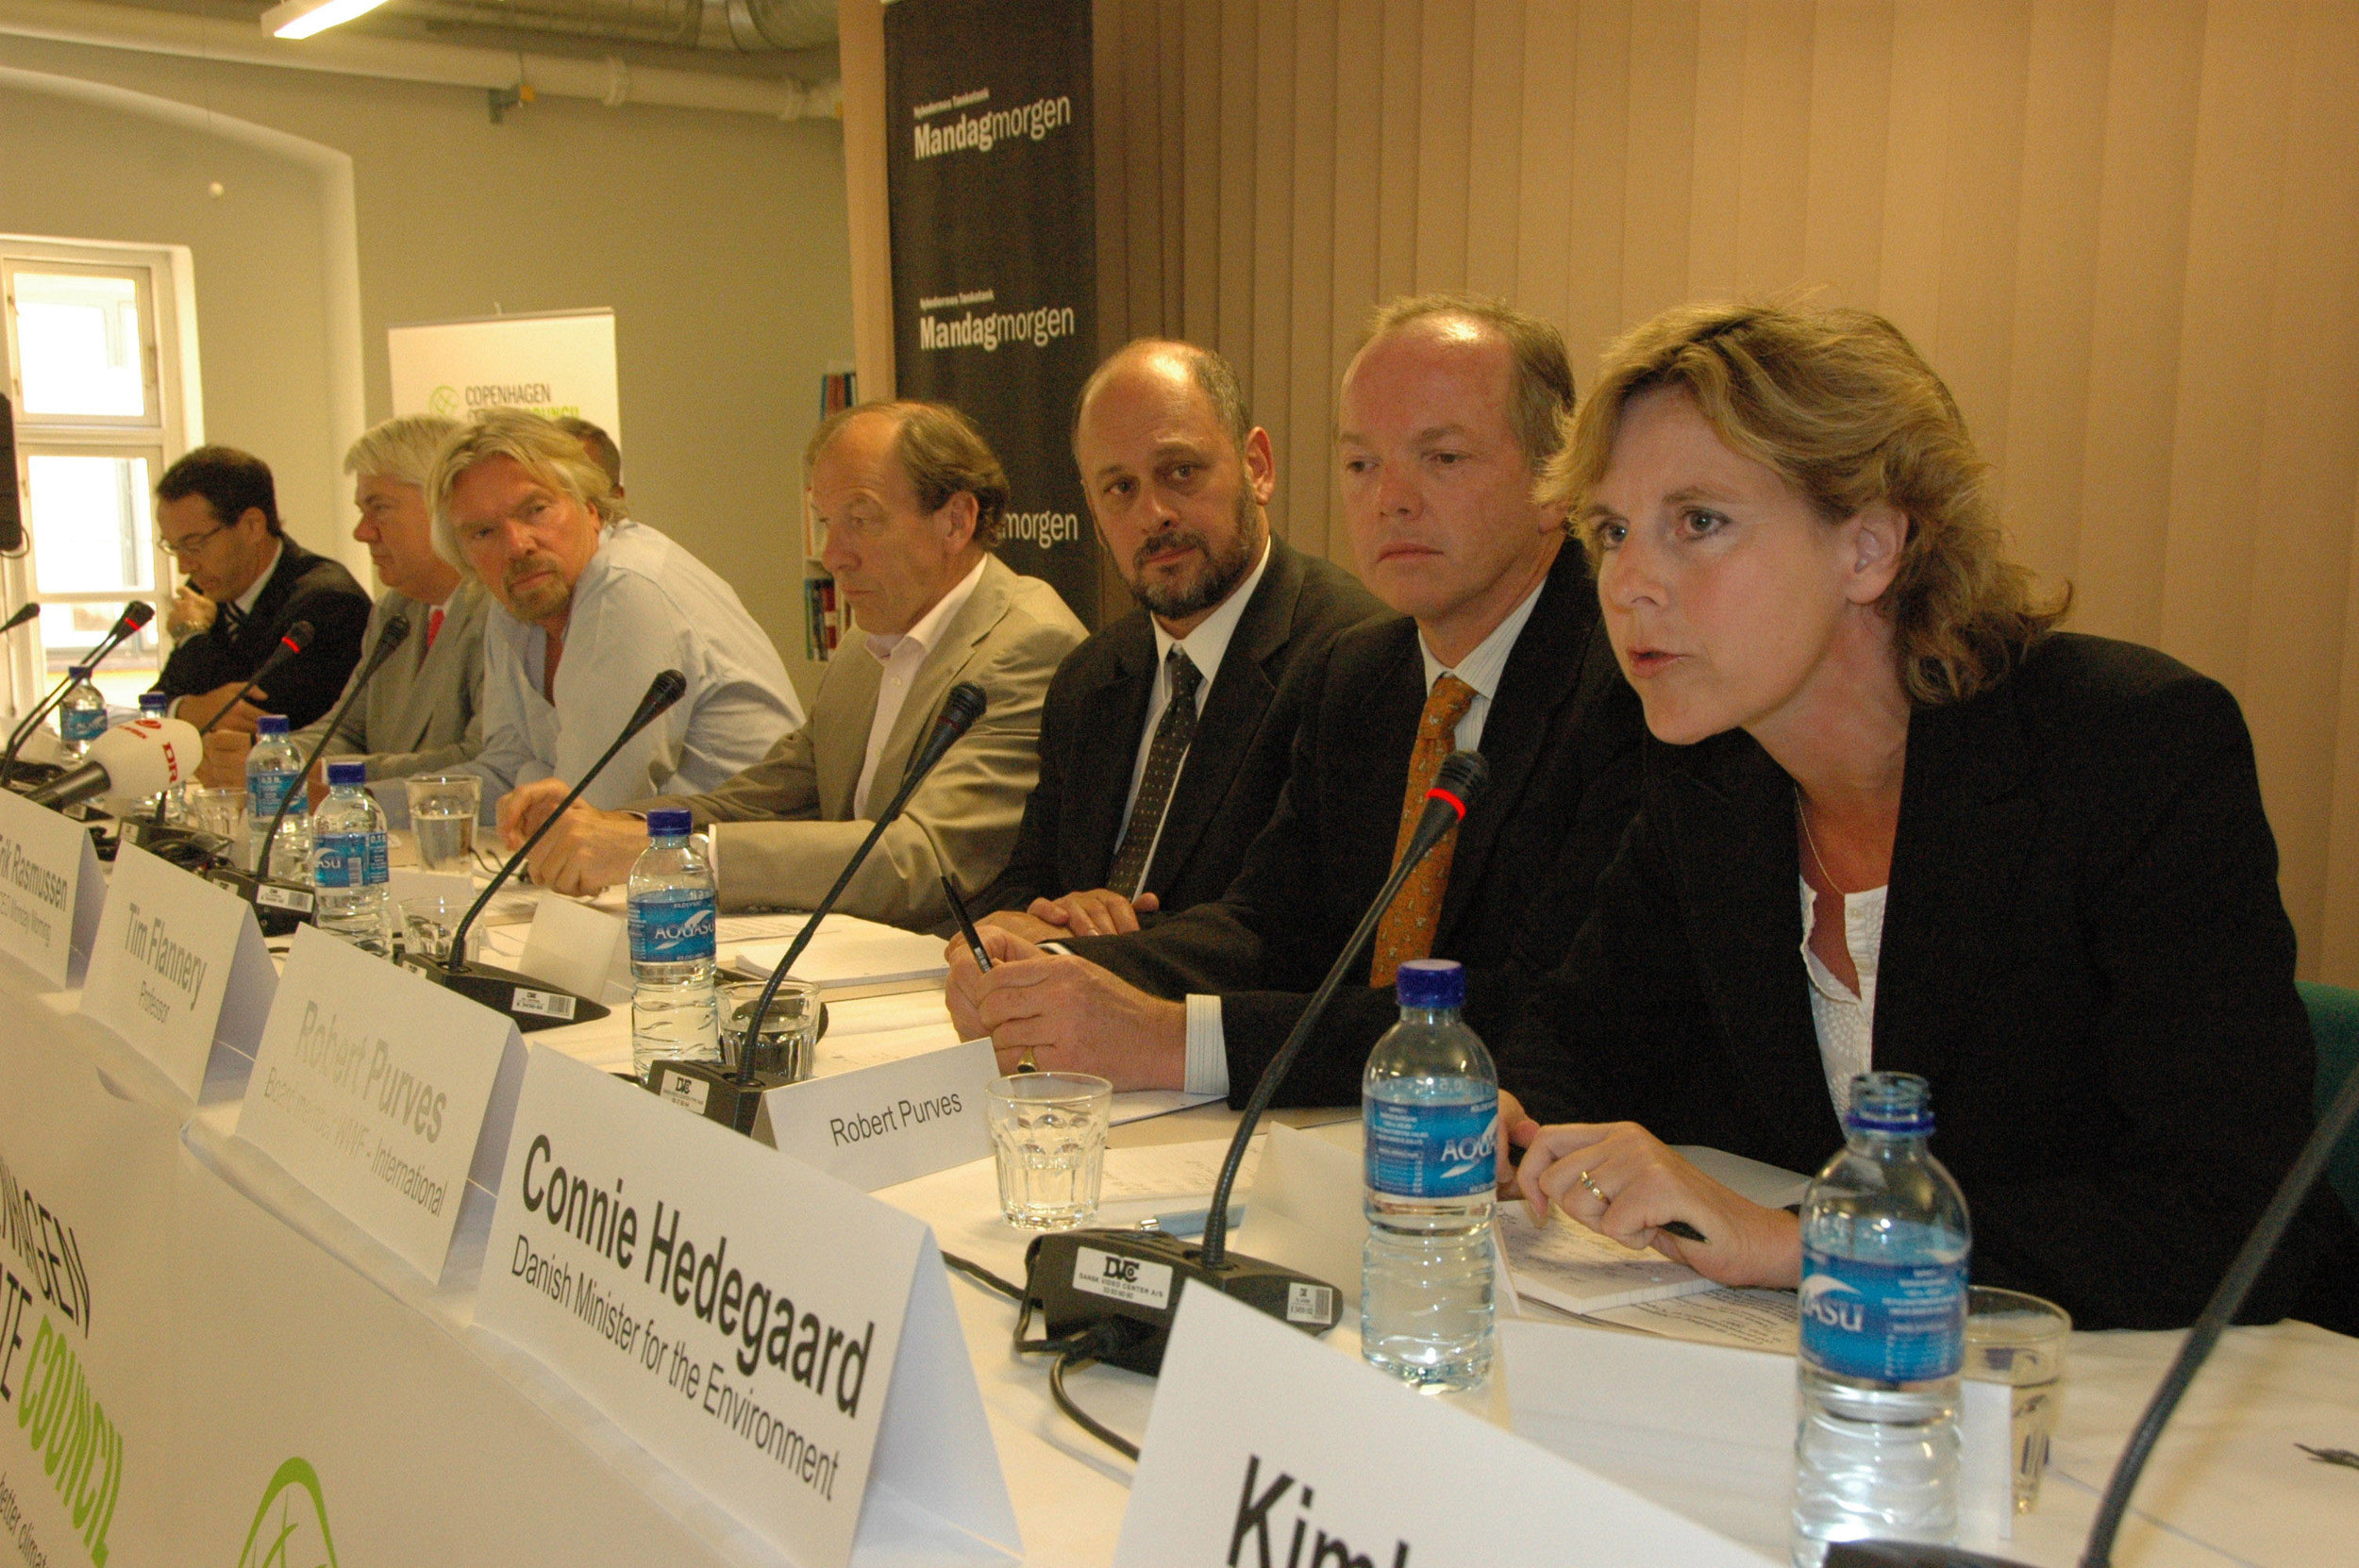 First Pressconference launching the Copenhagen Climate Council, May 2007